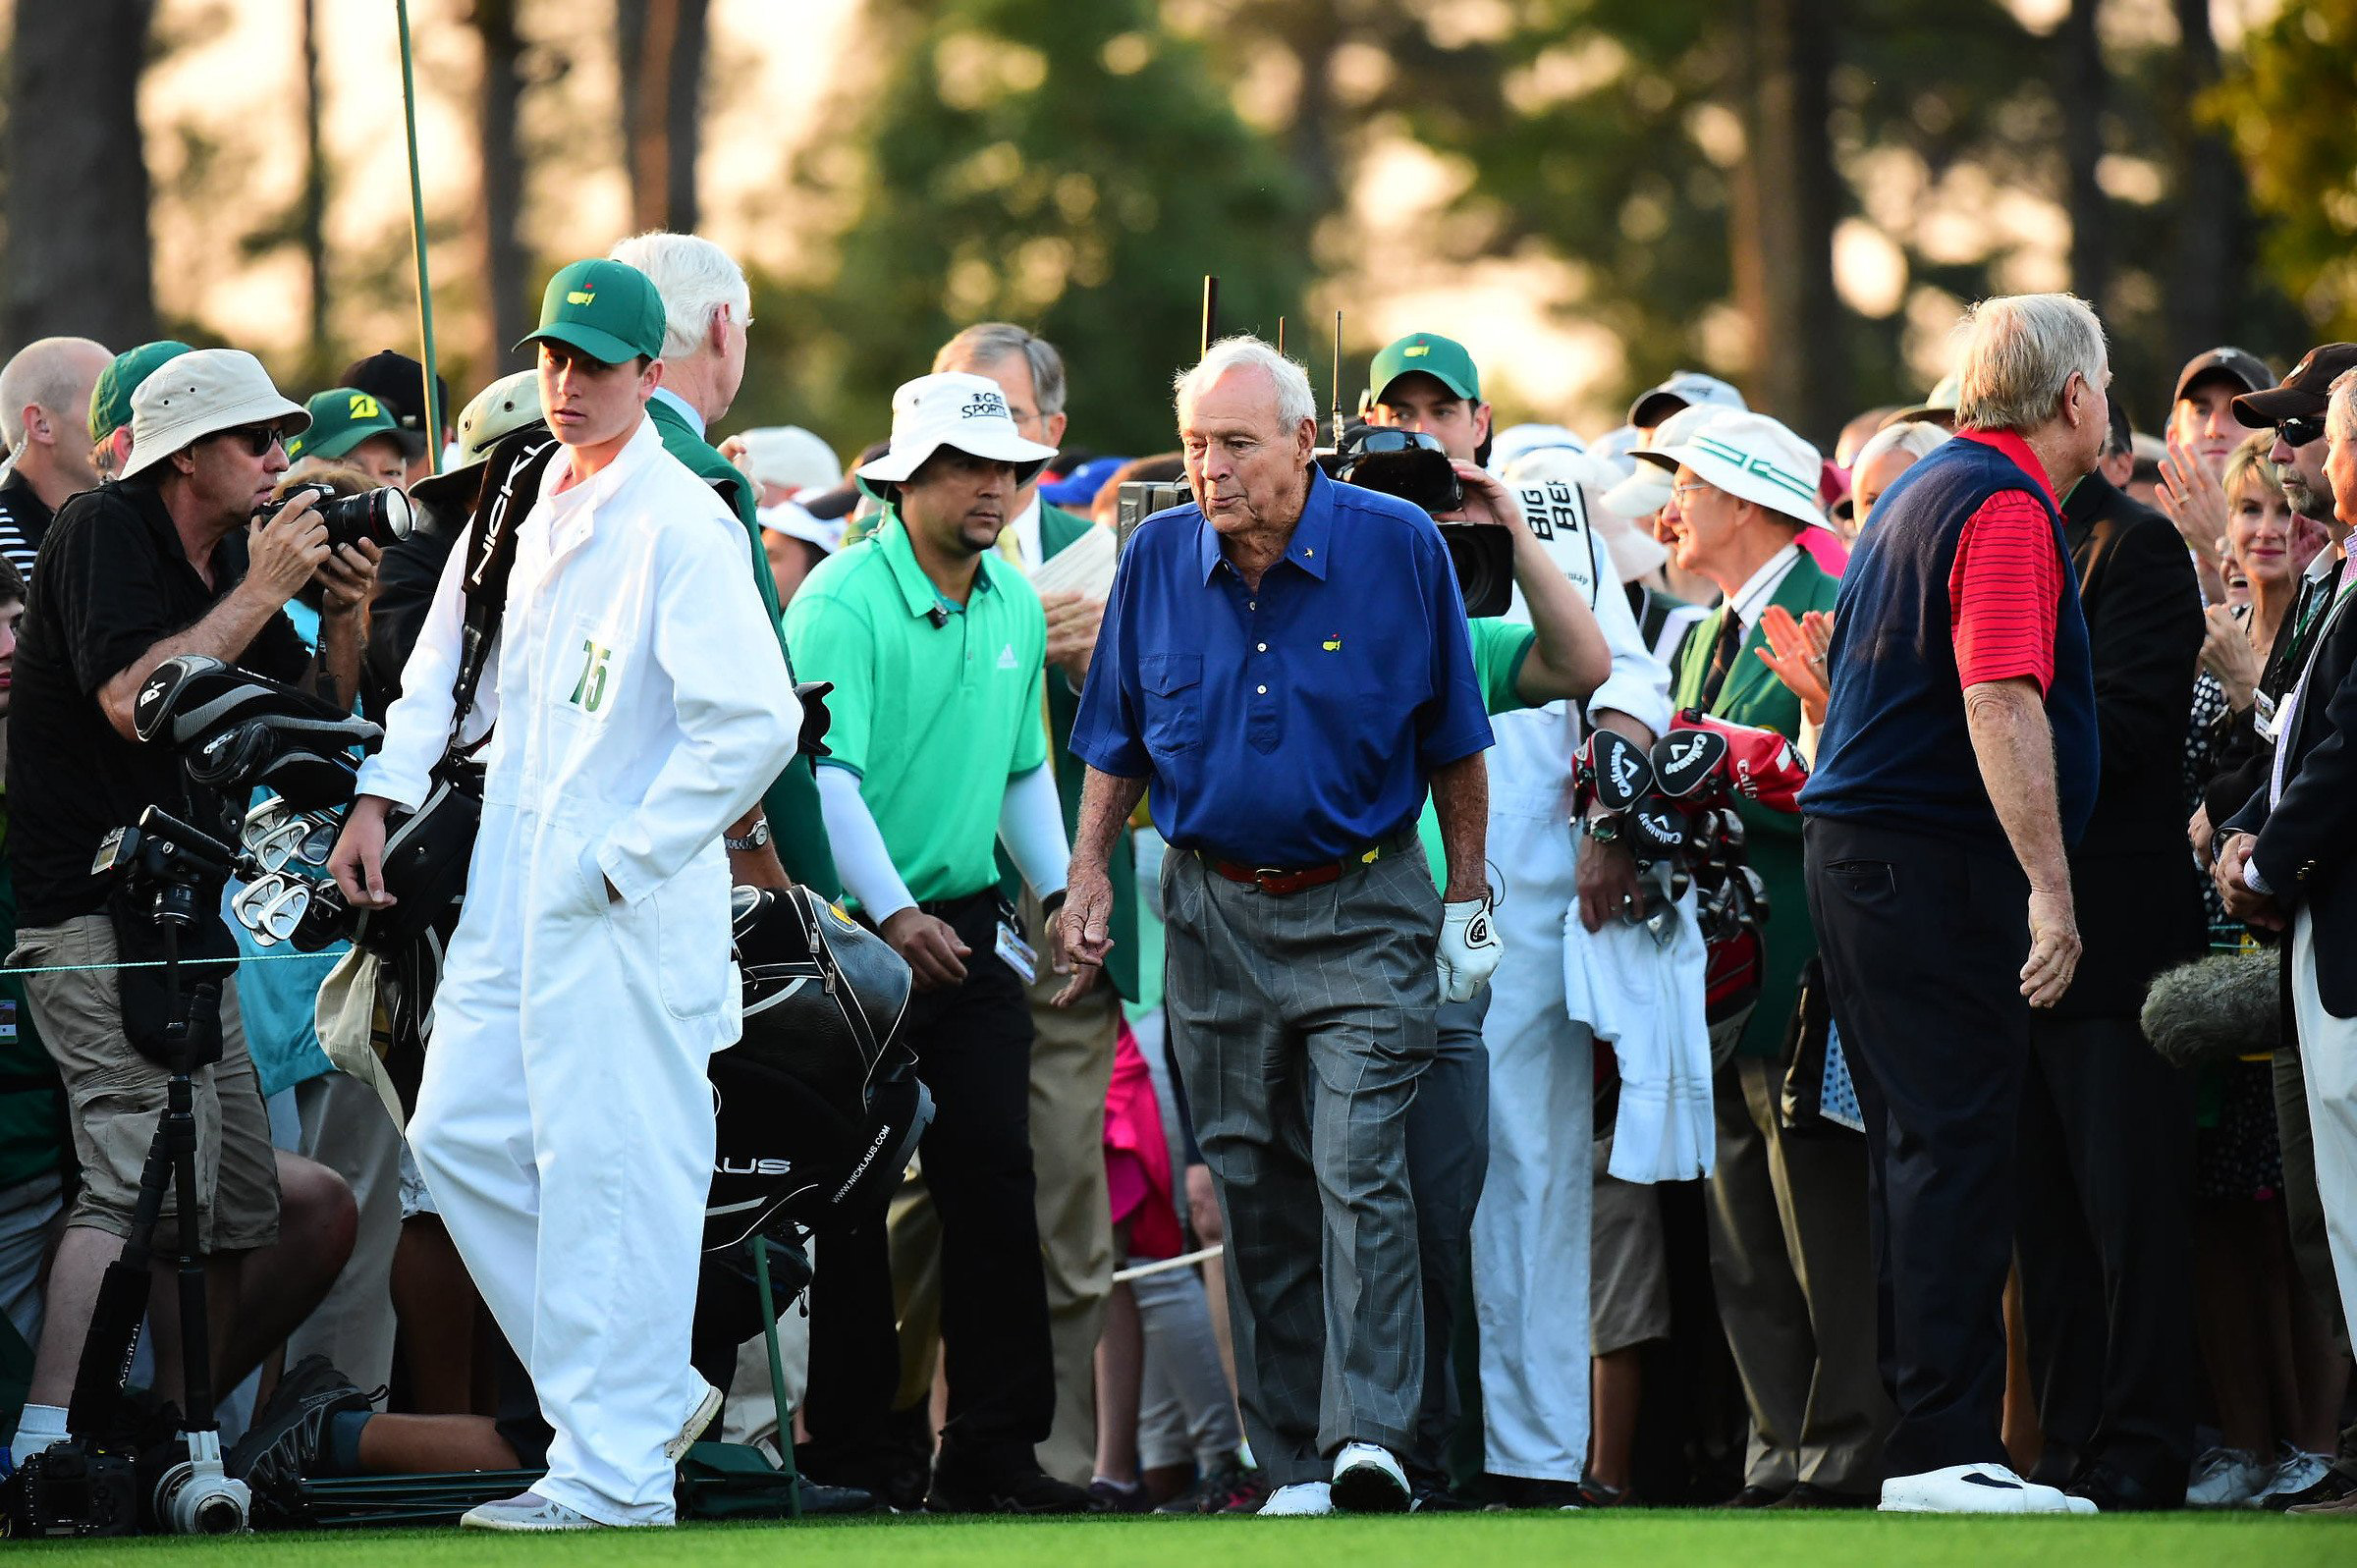 The King arrives at Augusta National Thursday morning for the ceremonial Masters tee shot.